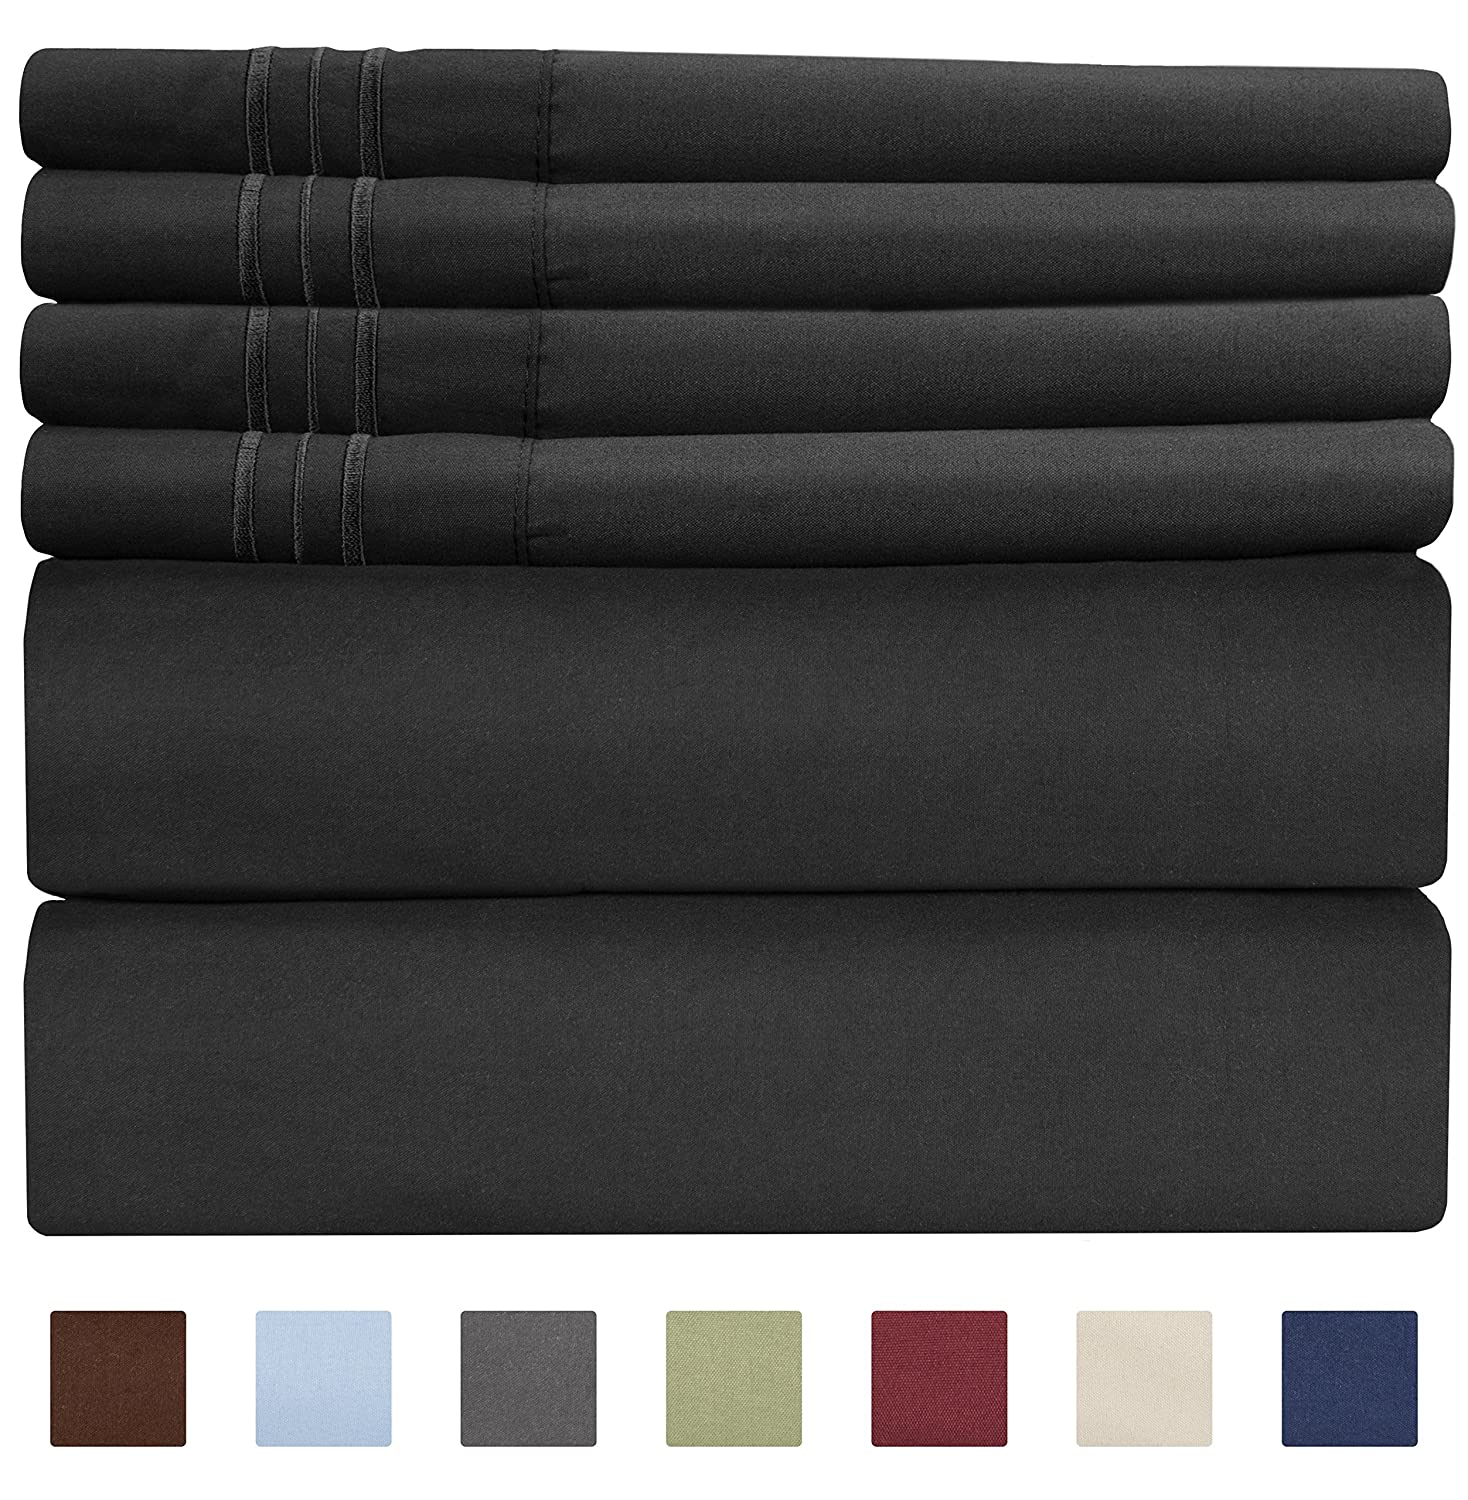 Deep Pockets Sheets fit 18 Inch to 24 Inches Sheets by CGK Unlimited